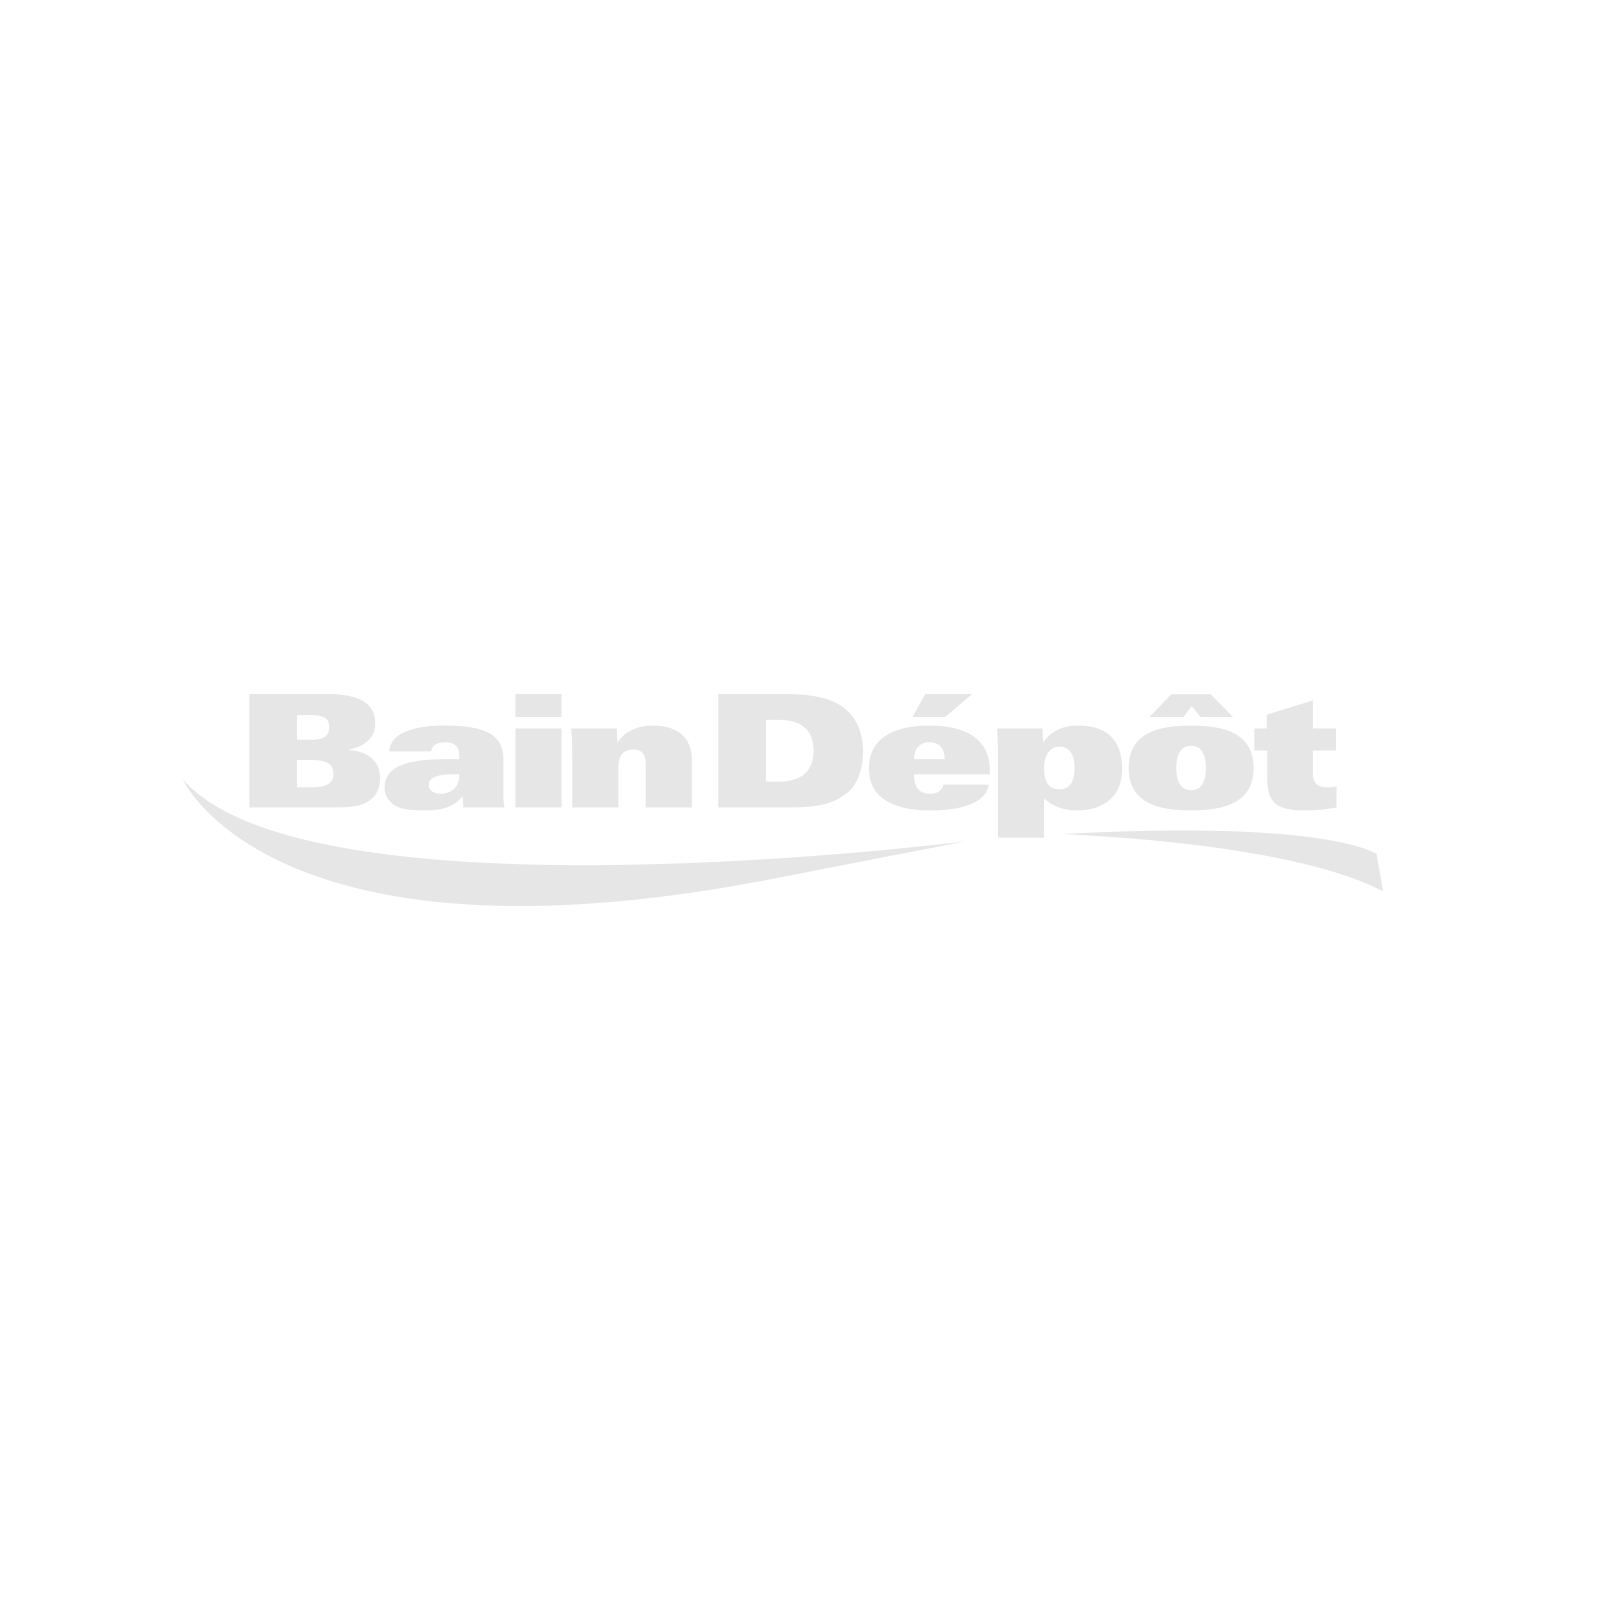 "Vasque allongée en porcelaine blanche 24"" x 15"""